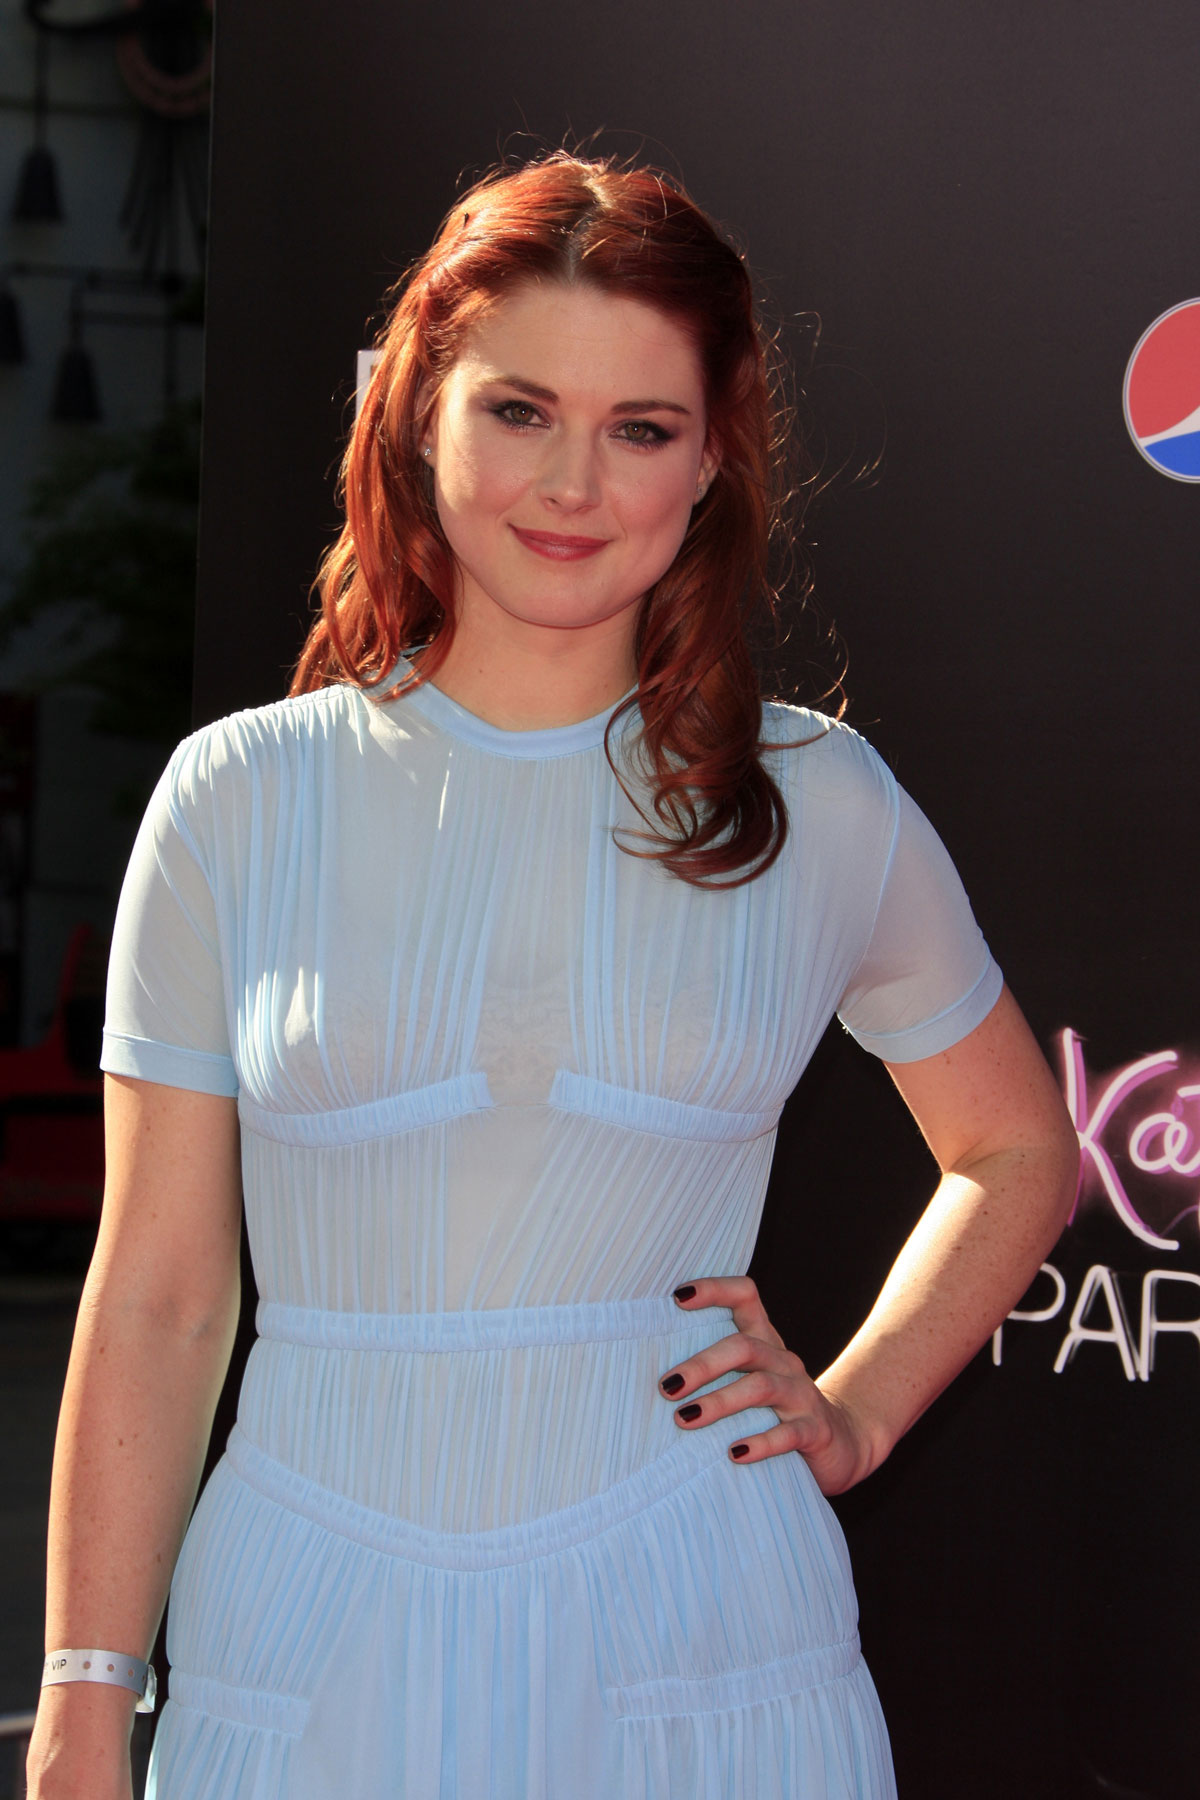 alexandra breckenridge instaalexandra breckenridge freaks and geeks, alexandra breckenridge wallpaper, alexandra breckenridge hair color, alexandra breckenridge evan peters, alexandra breckenridge mbti, alexandra breckenridge tumblr gif, alexandra breckenridge cinemorgue, alexandra breckenridge reddit, alexandra breckenridge zimbio, alexandra breckenridge husband, alexandra breckenridge insta, alexandra breckenridge csi, alexandra breckenridge instagram, alexandra breckenridge walking dead, alexandra breckenridge moira o'hara, alexandra breckenridge healthy celeb, alexandra breckenridge fan mail